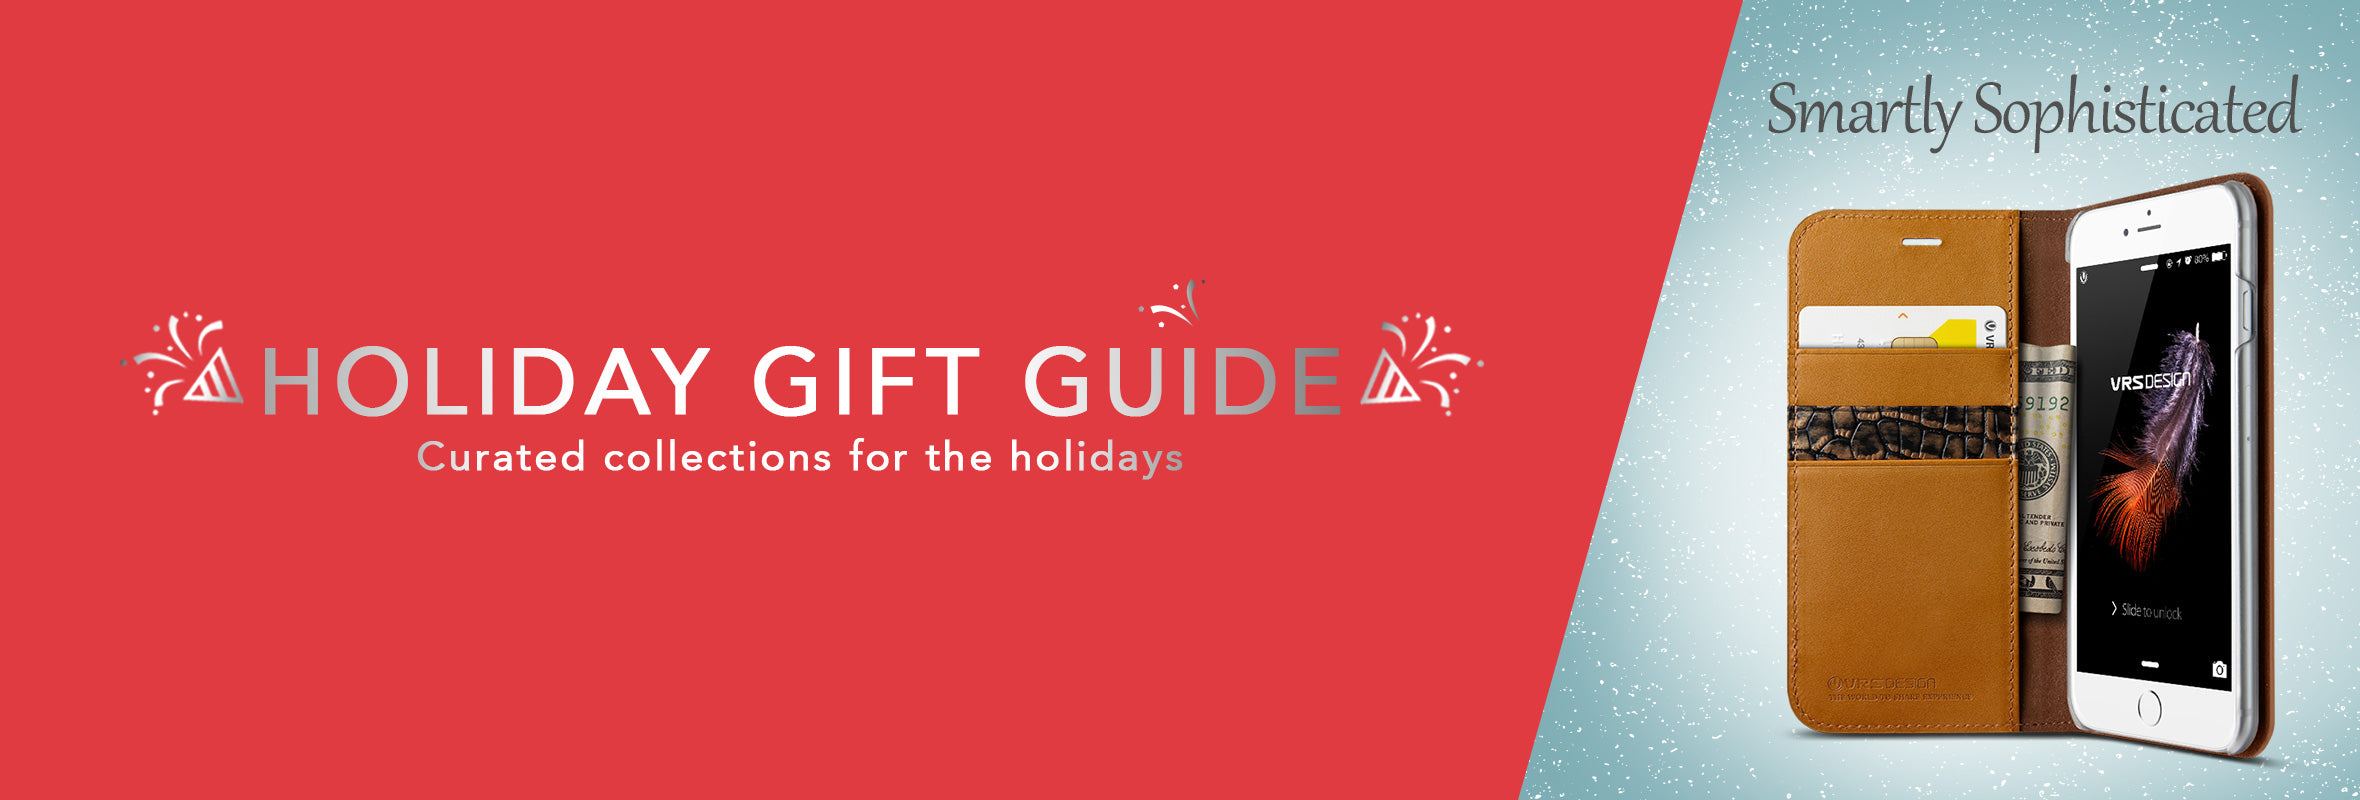 Holiday Gift Guide - Smartly Sophisticated